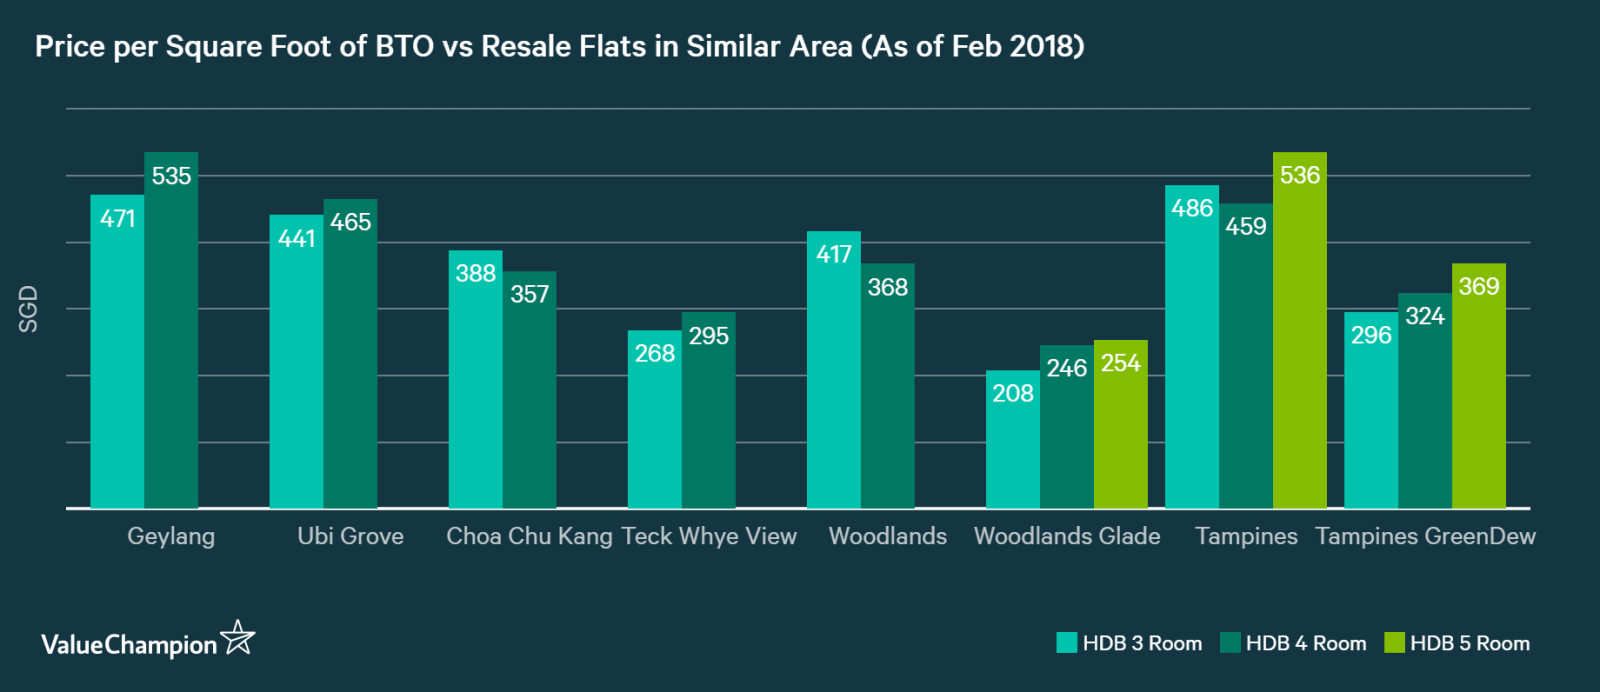 price per square foot of BTO vs resale flat in Singapore by area